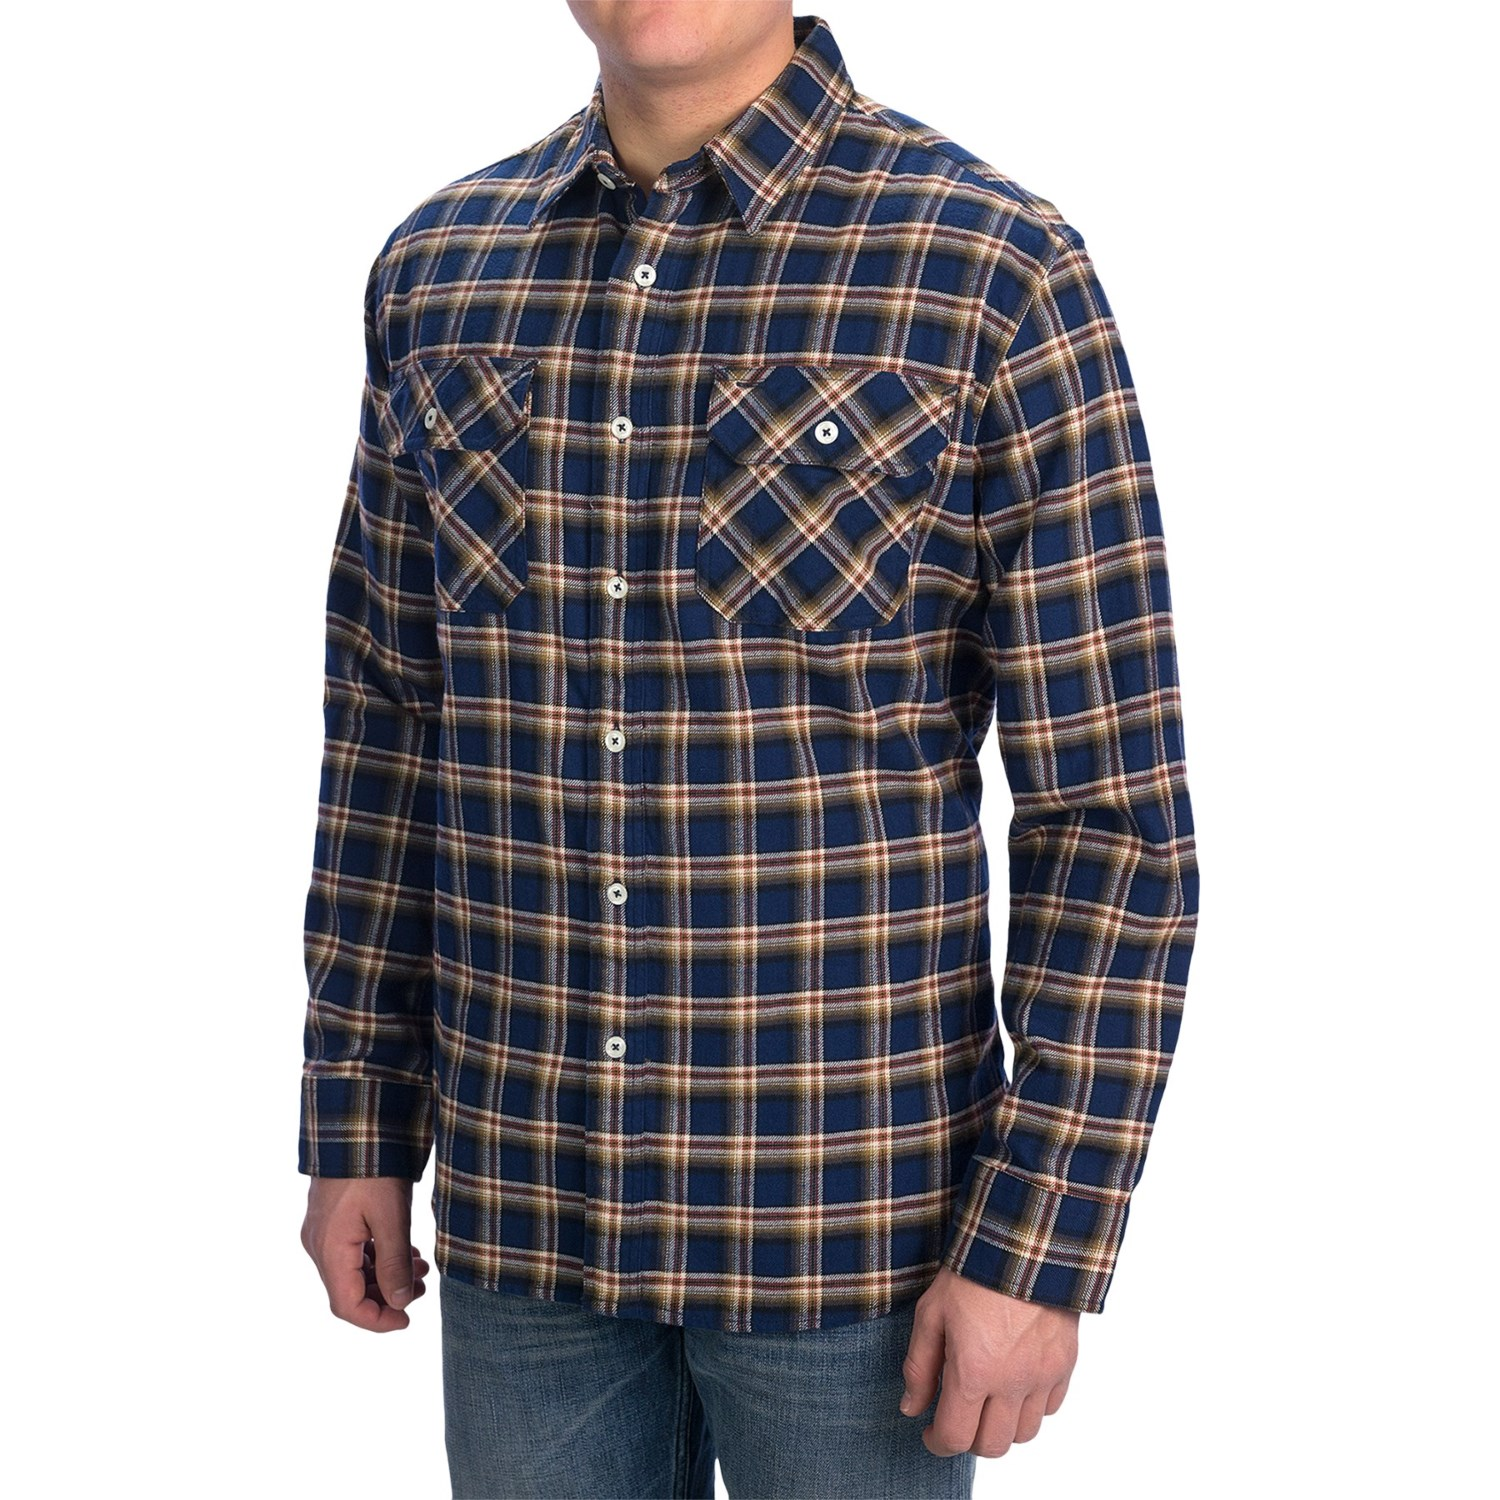 This all wool flannel shirt in plaid has certainly been the hallmark of the company since the s. Today, we want to take a close look at the history of this famous Plaid Shirt as well as the Pendleton Woolen Mills Company of Portland, Oregon. Pendleton Men's Wool Plaid Shirt.